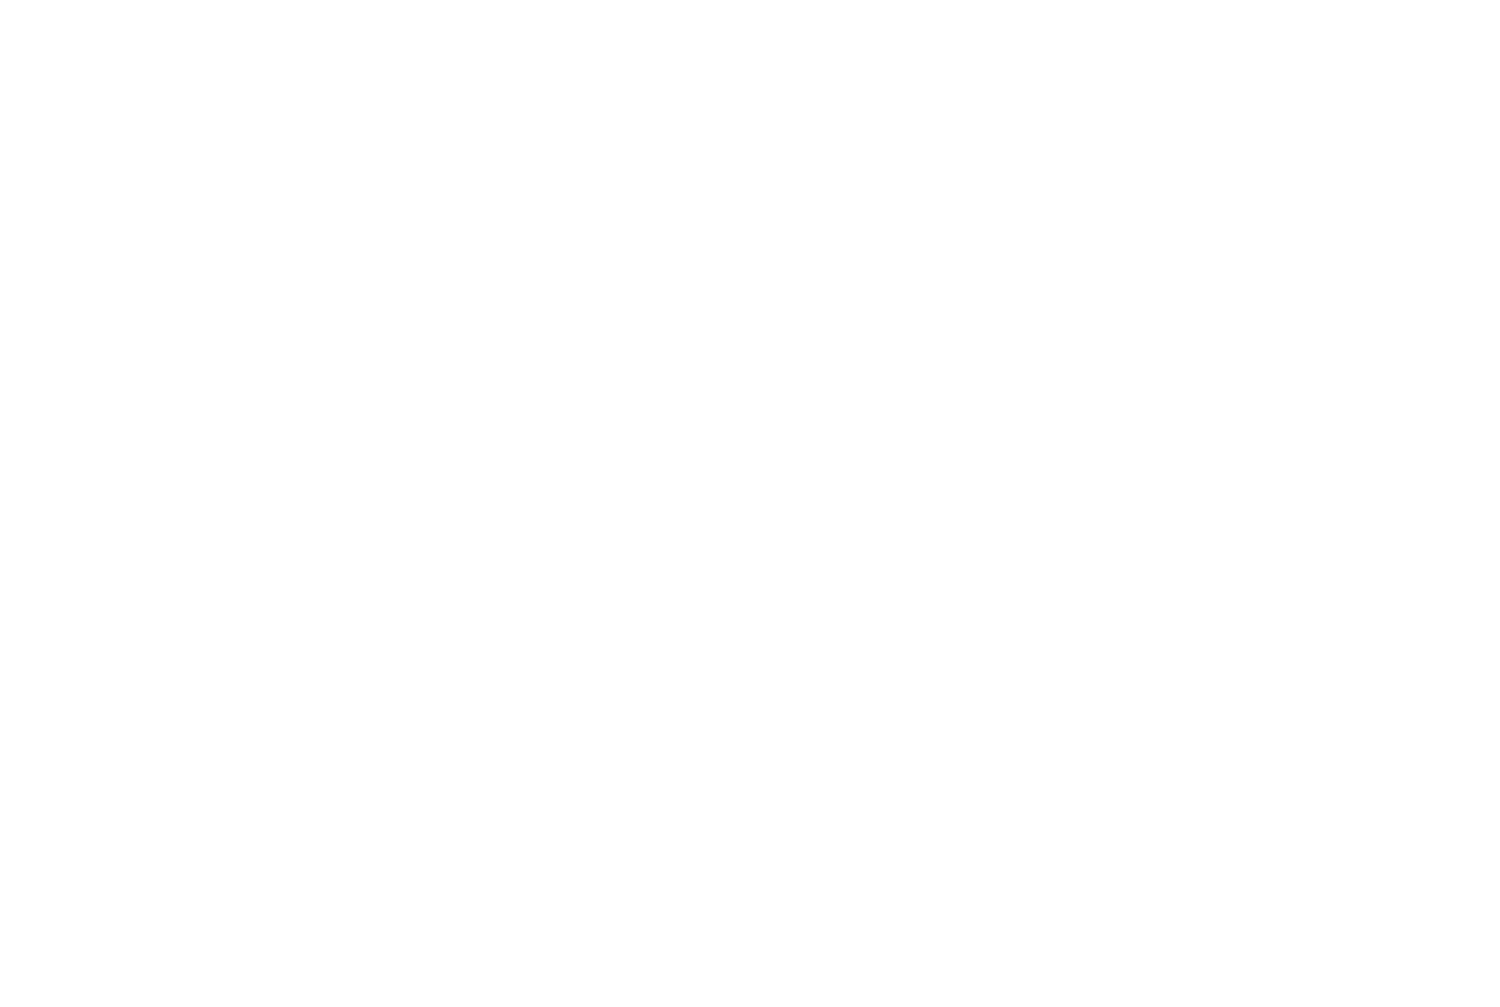 logo - Bellmont Securities (white)